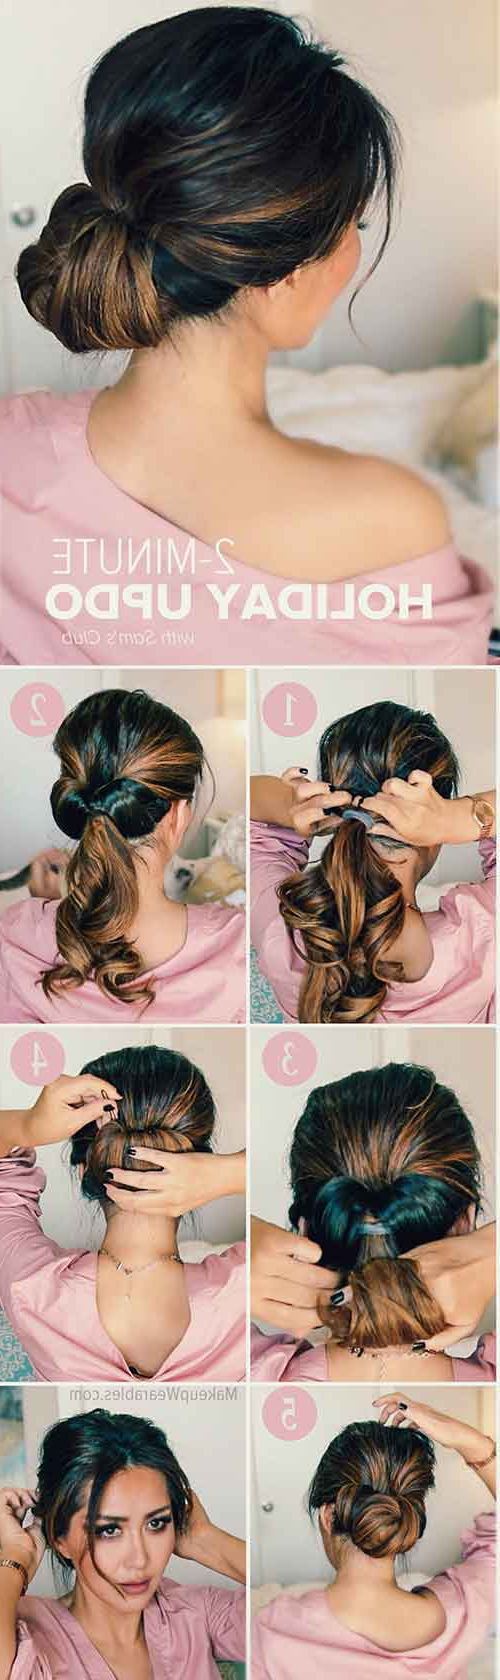 20 Stunningly Easy Diy Messy Buns Intended For Well Liked Wrap Around Ponytail Updo Hairstyles (Gallery 13 of 20)